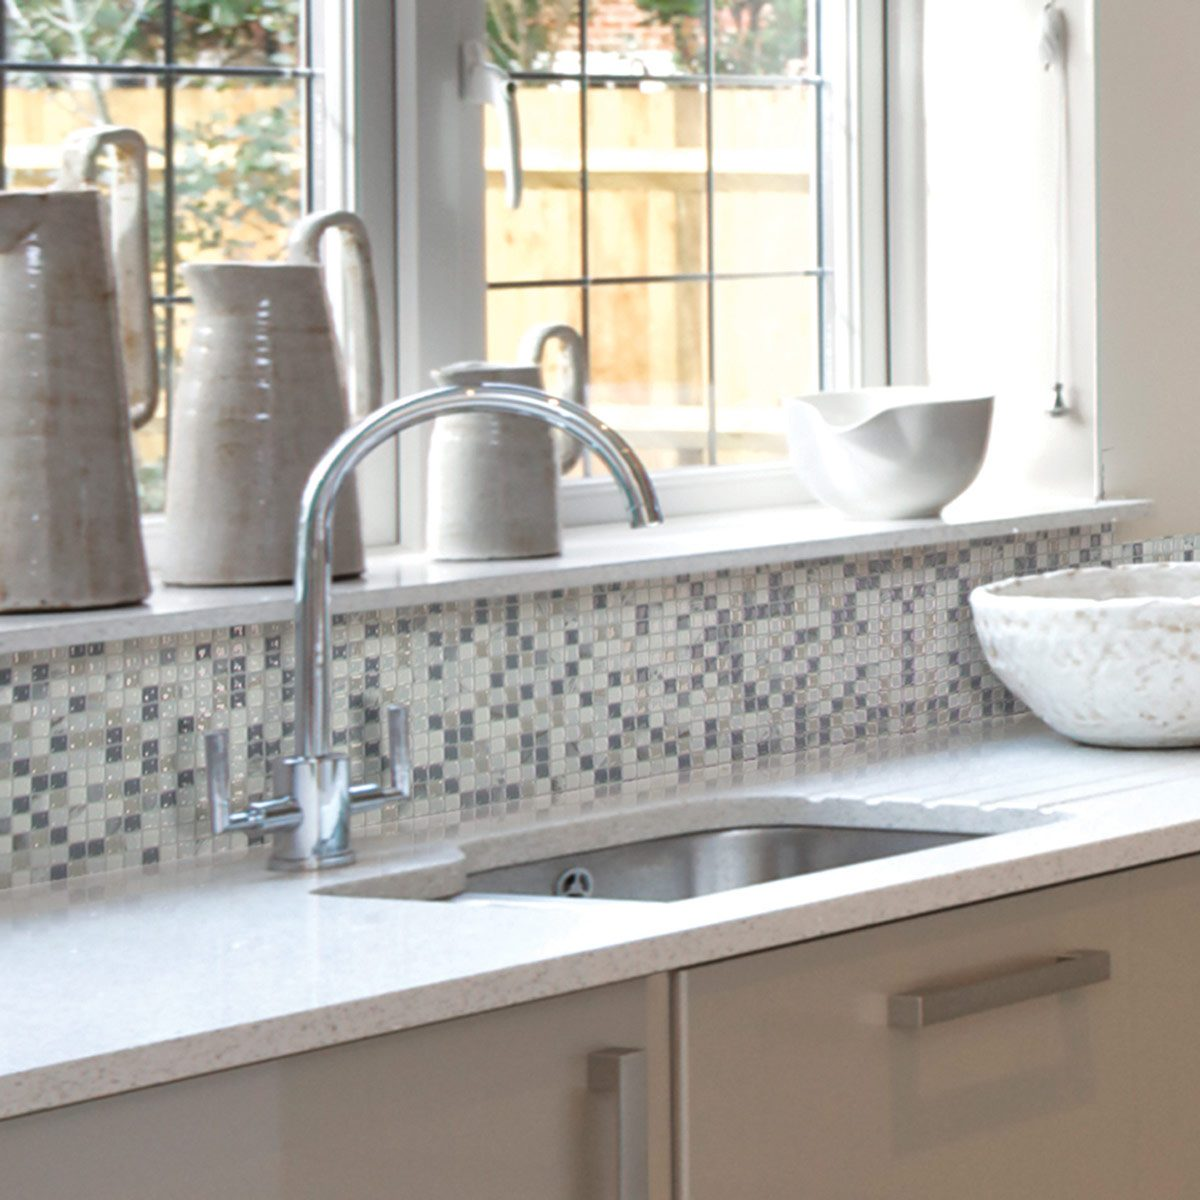 Kitchen Updates: Peel-and-Stick Backsplash Tiles